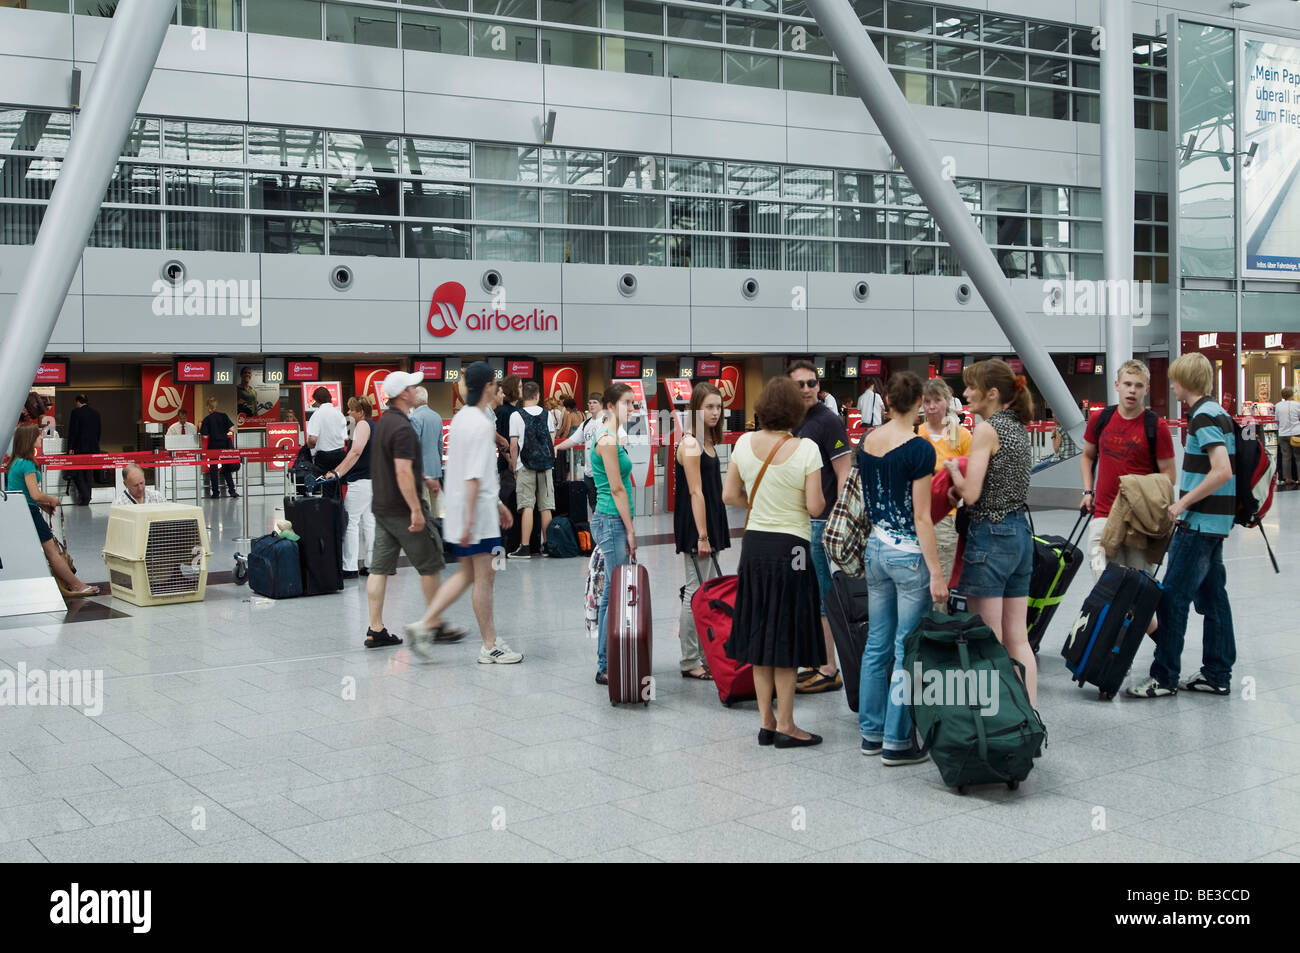 Passengers in front of the check-in counter of airberlin, Duesseldorf International Airport, North Rhine-Westphalia, - Stock Image